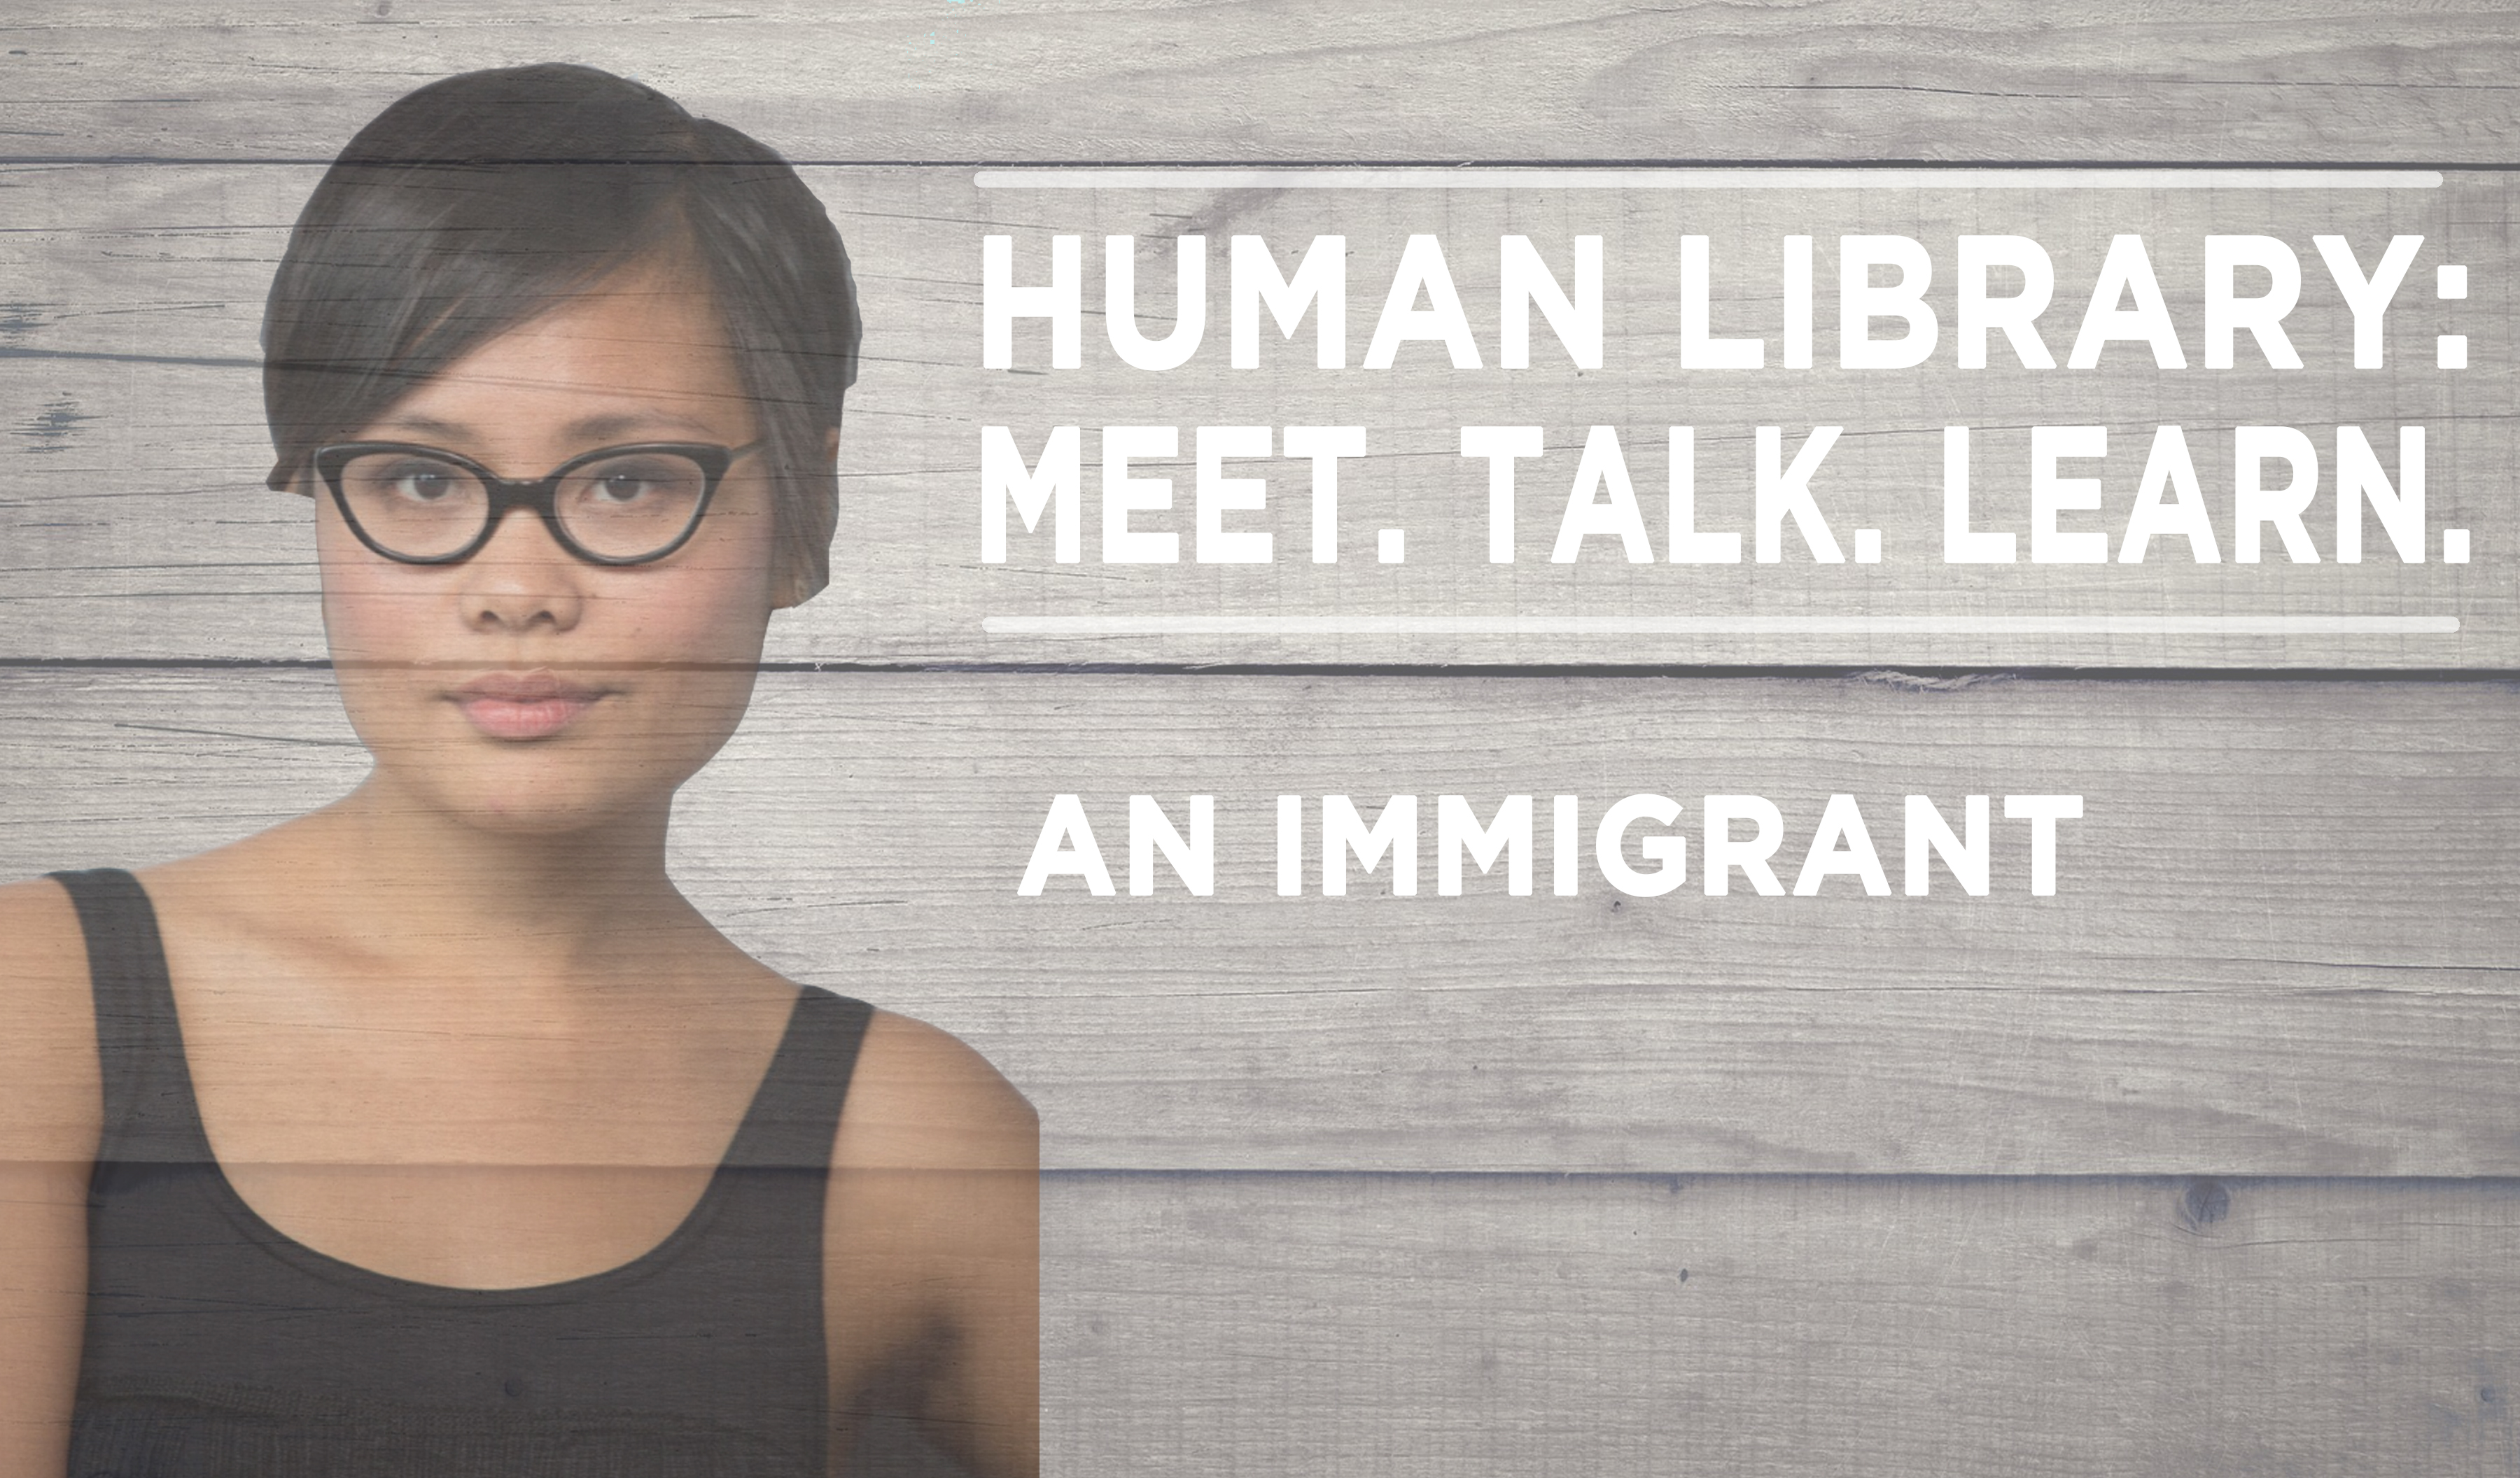 Human Library Logo - Immigrant